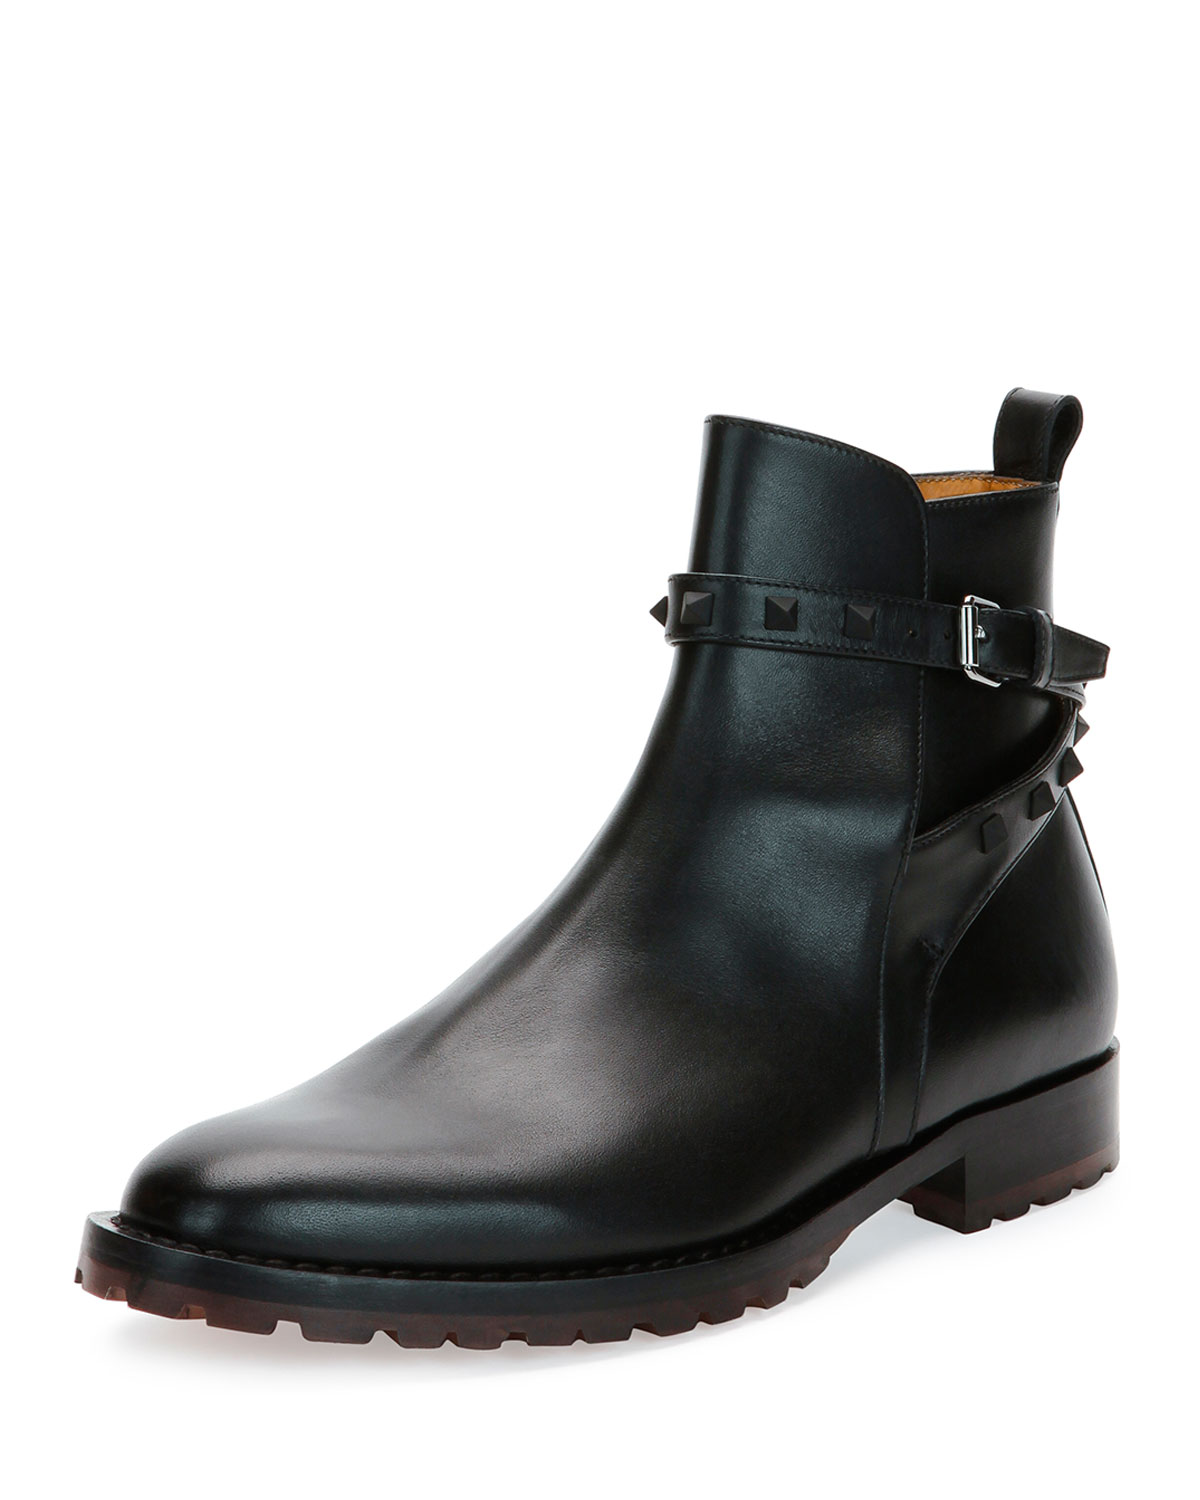 d19d6008c8d1 Valentino Rockstud Leather Chelsea Boots